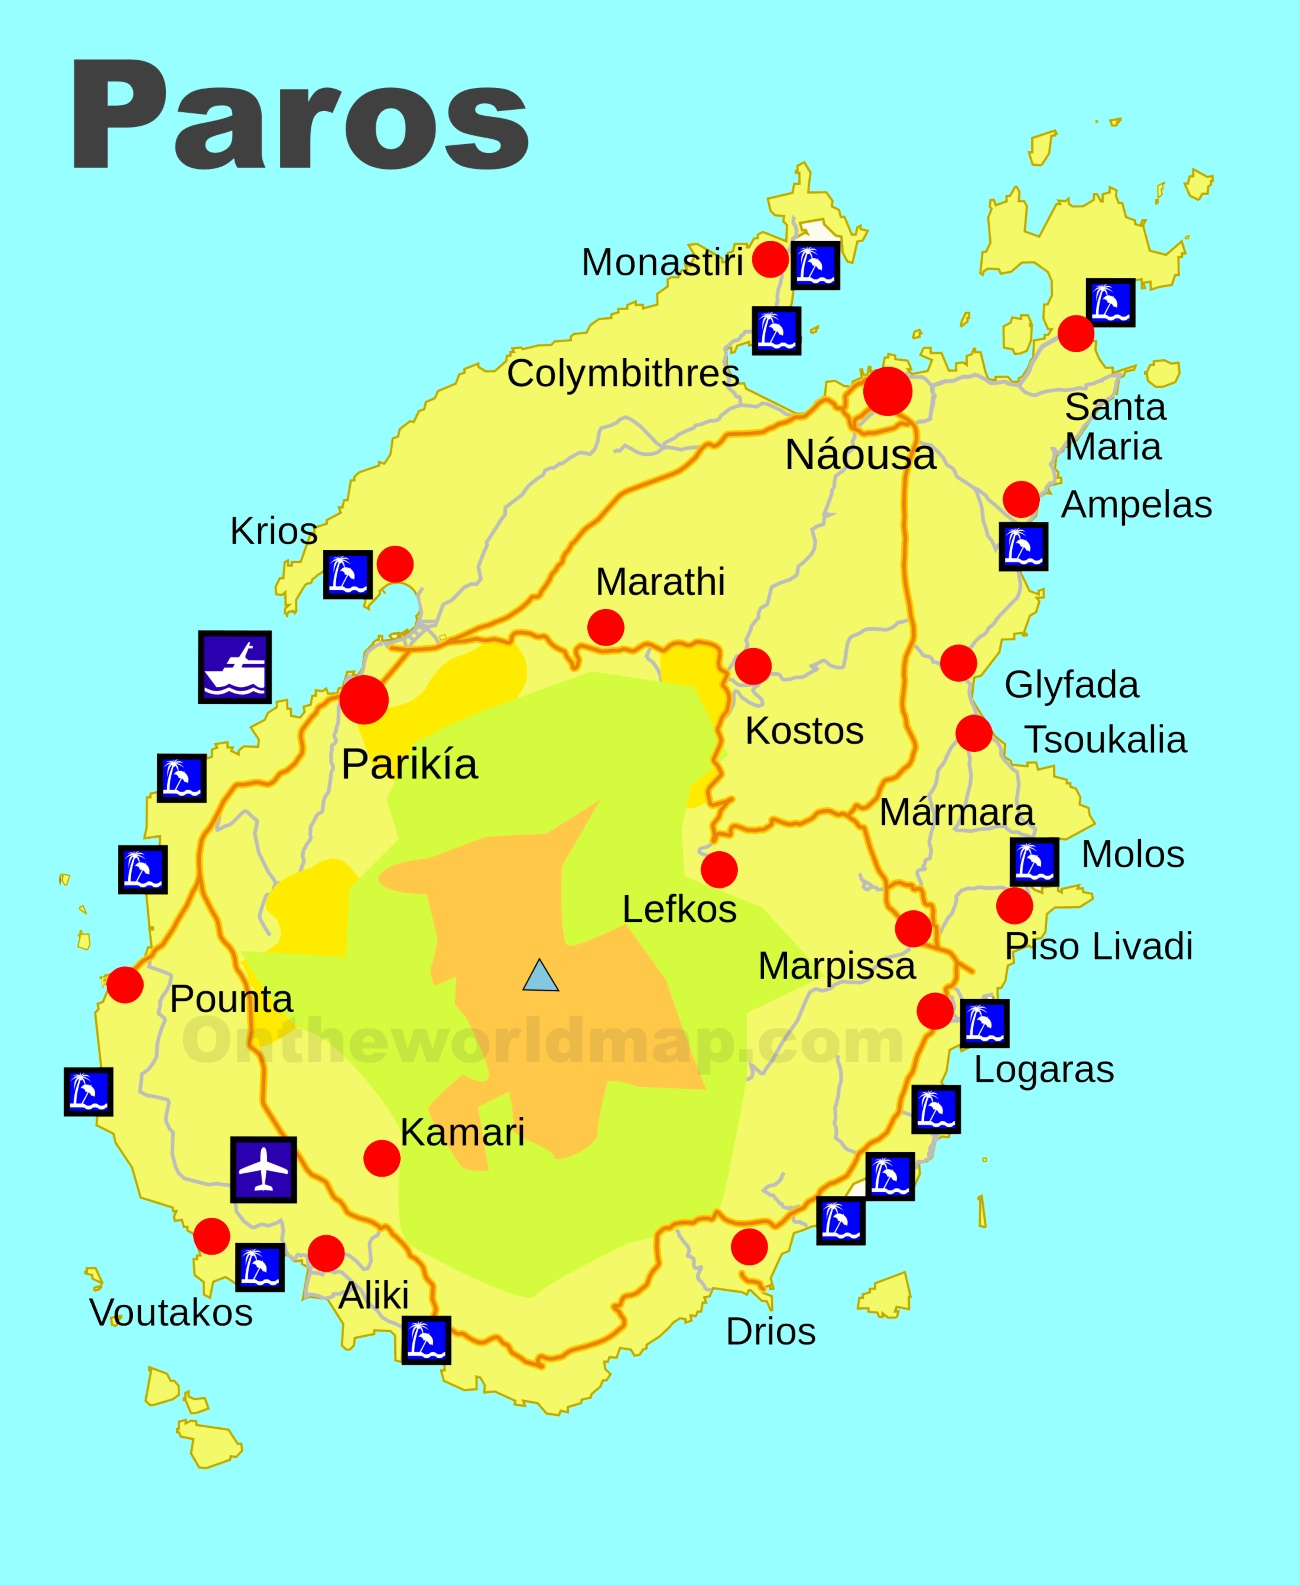 maps of new york city html with Paros Beaches Map on Londonma ide12 2 likewise Tignes Piste Map together with Cassis Location On The France Map as well Province Of Turin Map besides Koper Slovenia.